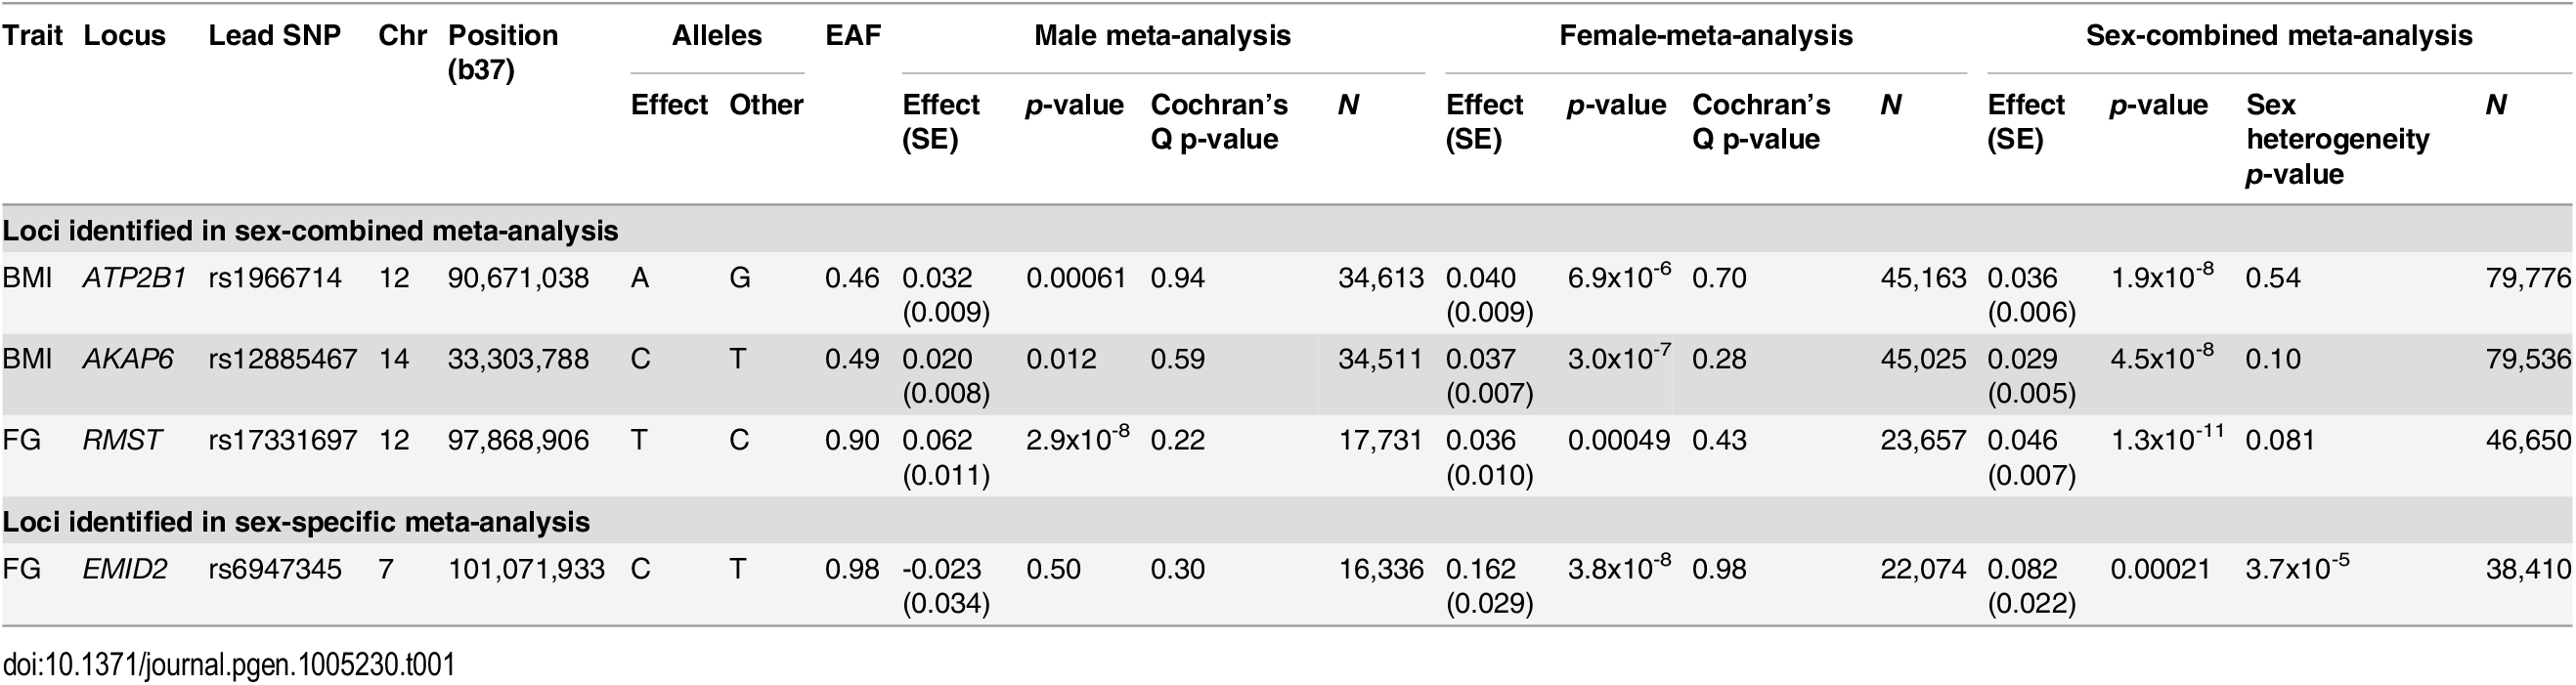 Novel loci for glycaemic and obesity-related traits achieving genome-wide significance (<i>p</i><5x10<sup>-8</sup>).